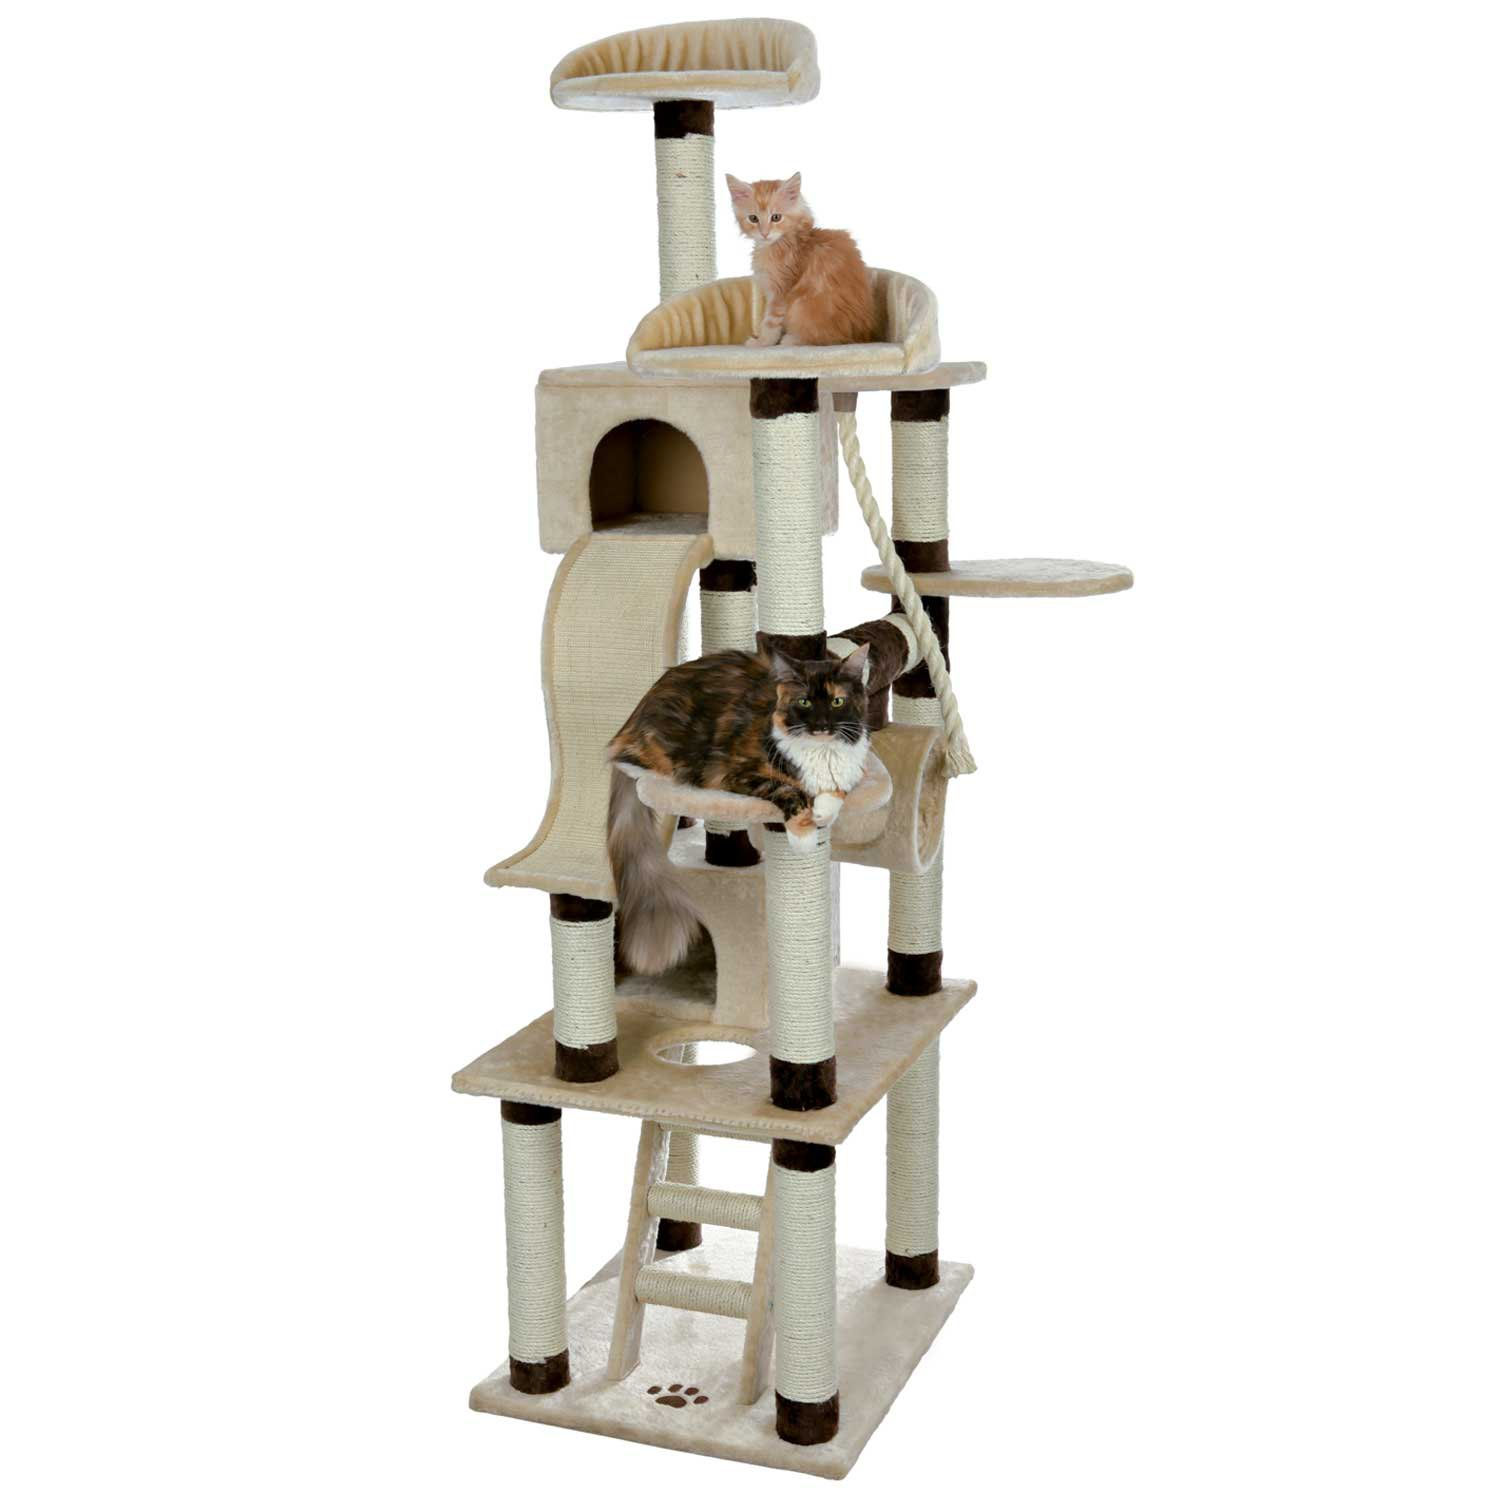 Trixie Adiva Cat Playground in Beige  Chocolate Brown 82.25 24 IN